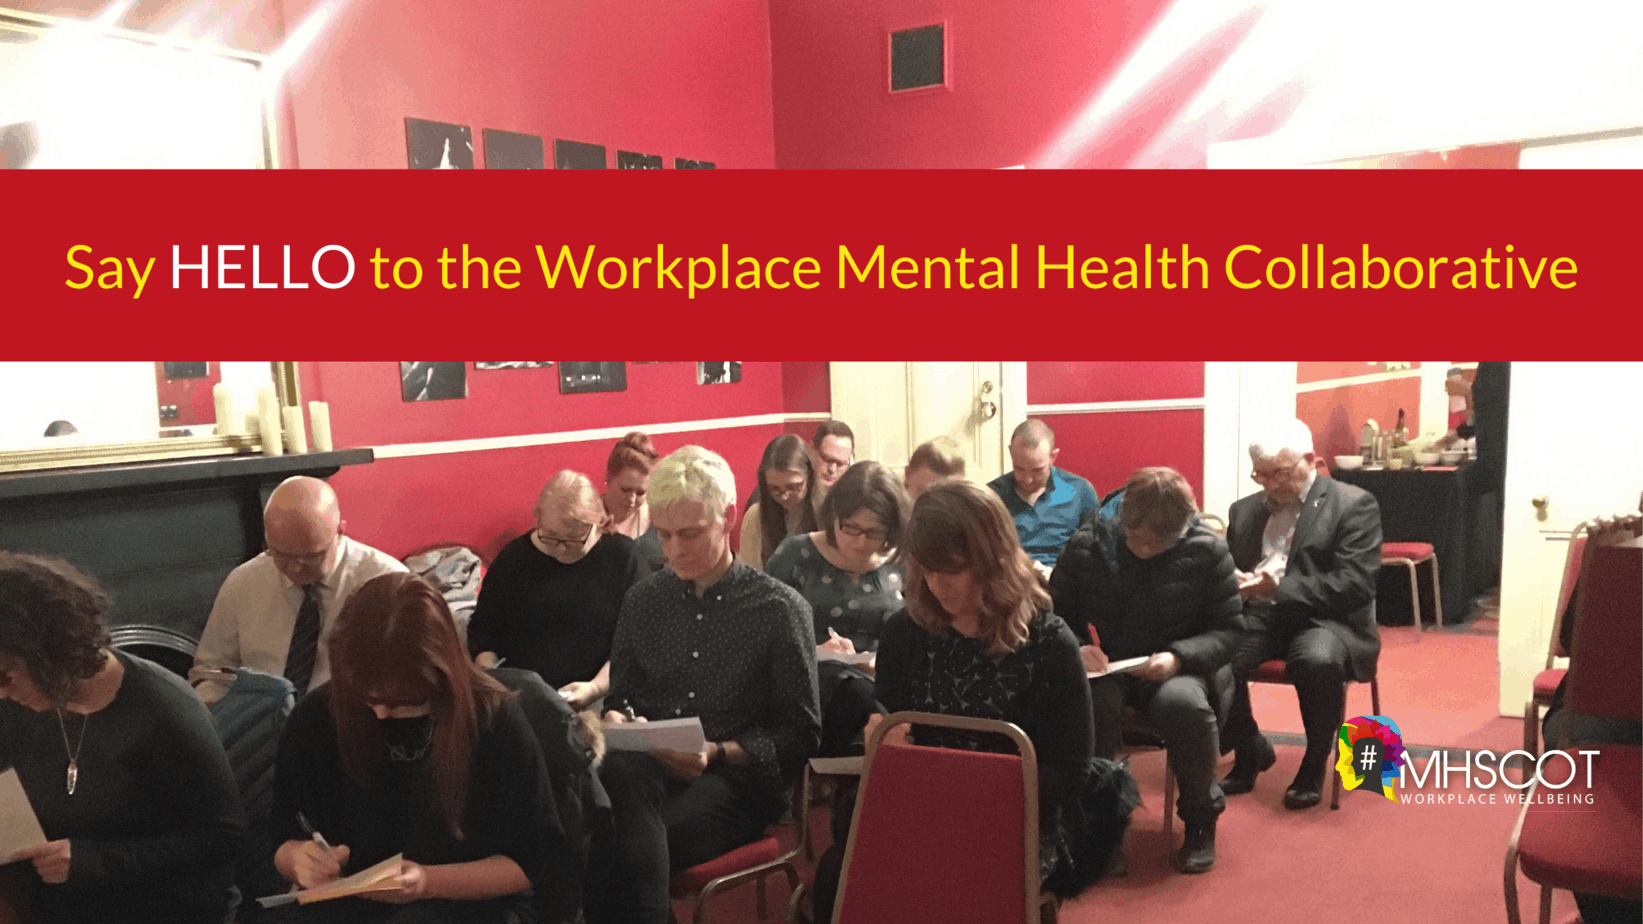 Say hello to the workplace mental health collaborative